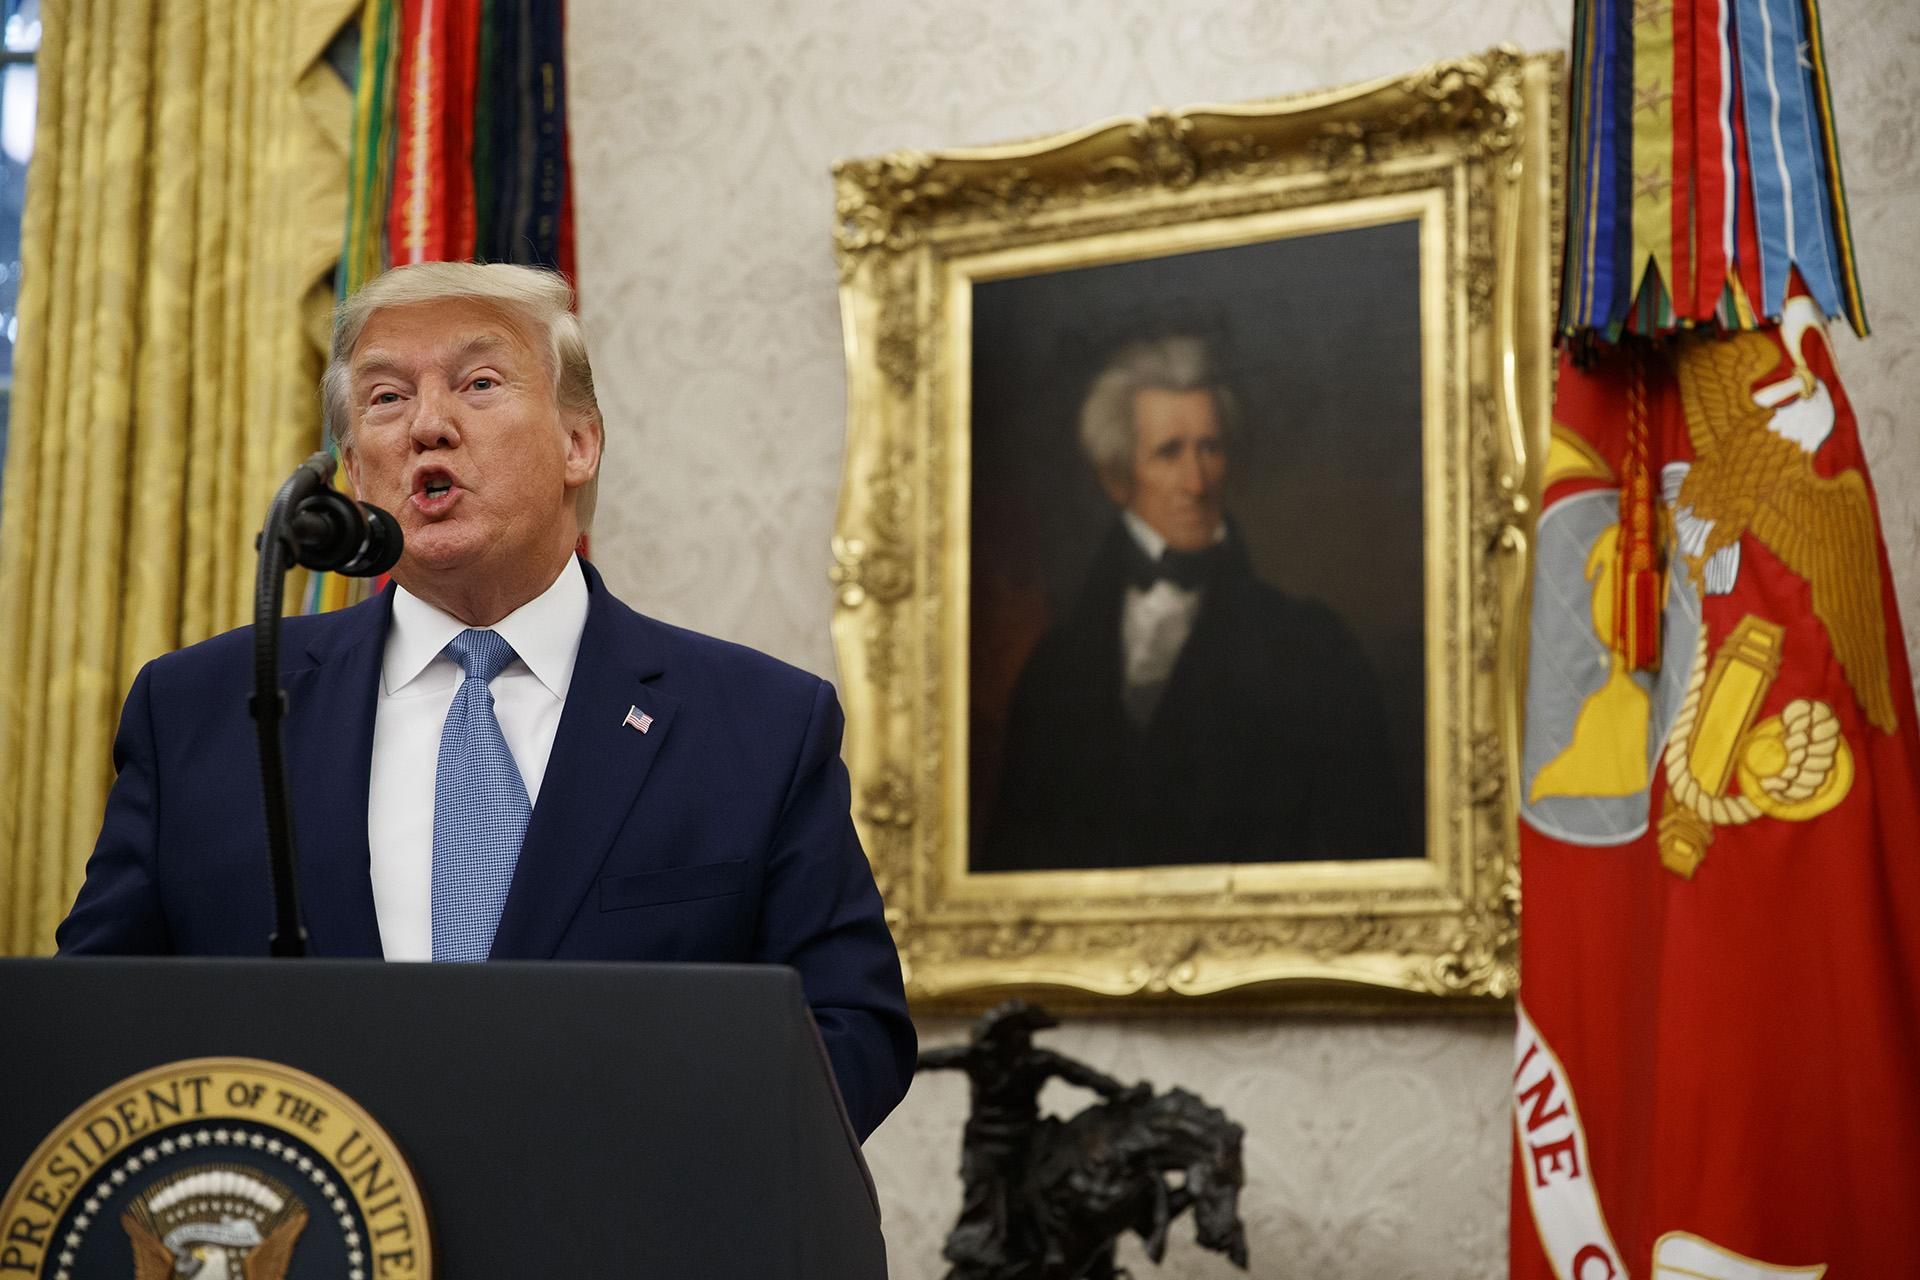 President Donald Trump speaks during a ceremony to present the Presidential Medal of Freedom to former Attorney General Edwin Meese, in the Oval Office of the White House, Tuesday, Oct. 8, 2019, in Washington. (AP Photo / Alex Brandon)